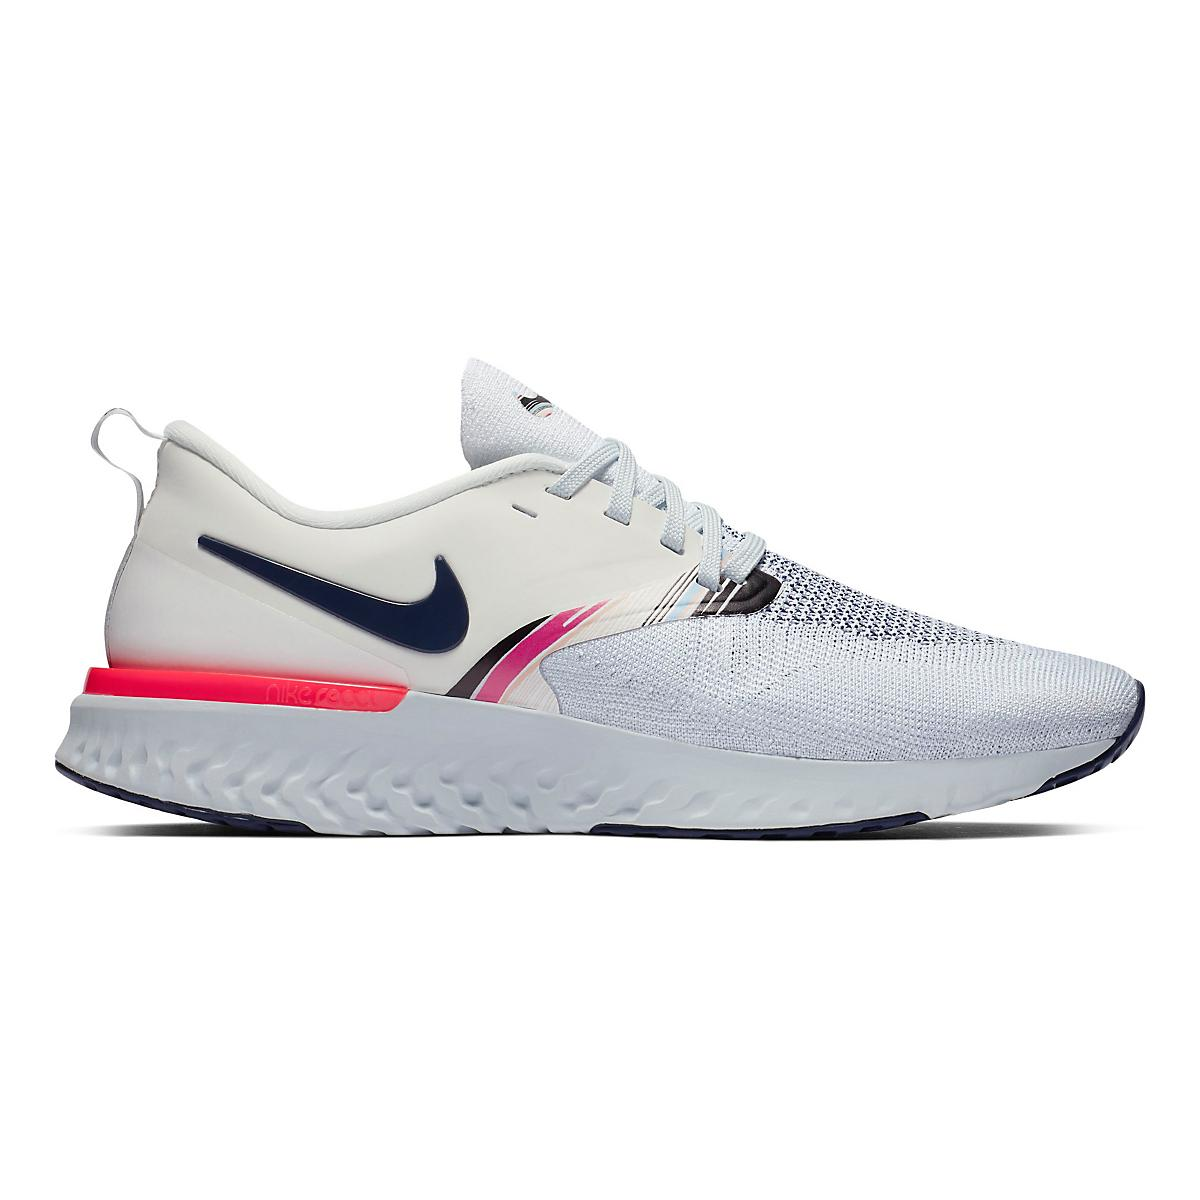 8b55c7d16b1e0 Womens Nike Odyssey React Flyknit 2 PRM Running Shoe at Road Runner Sports